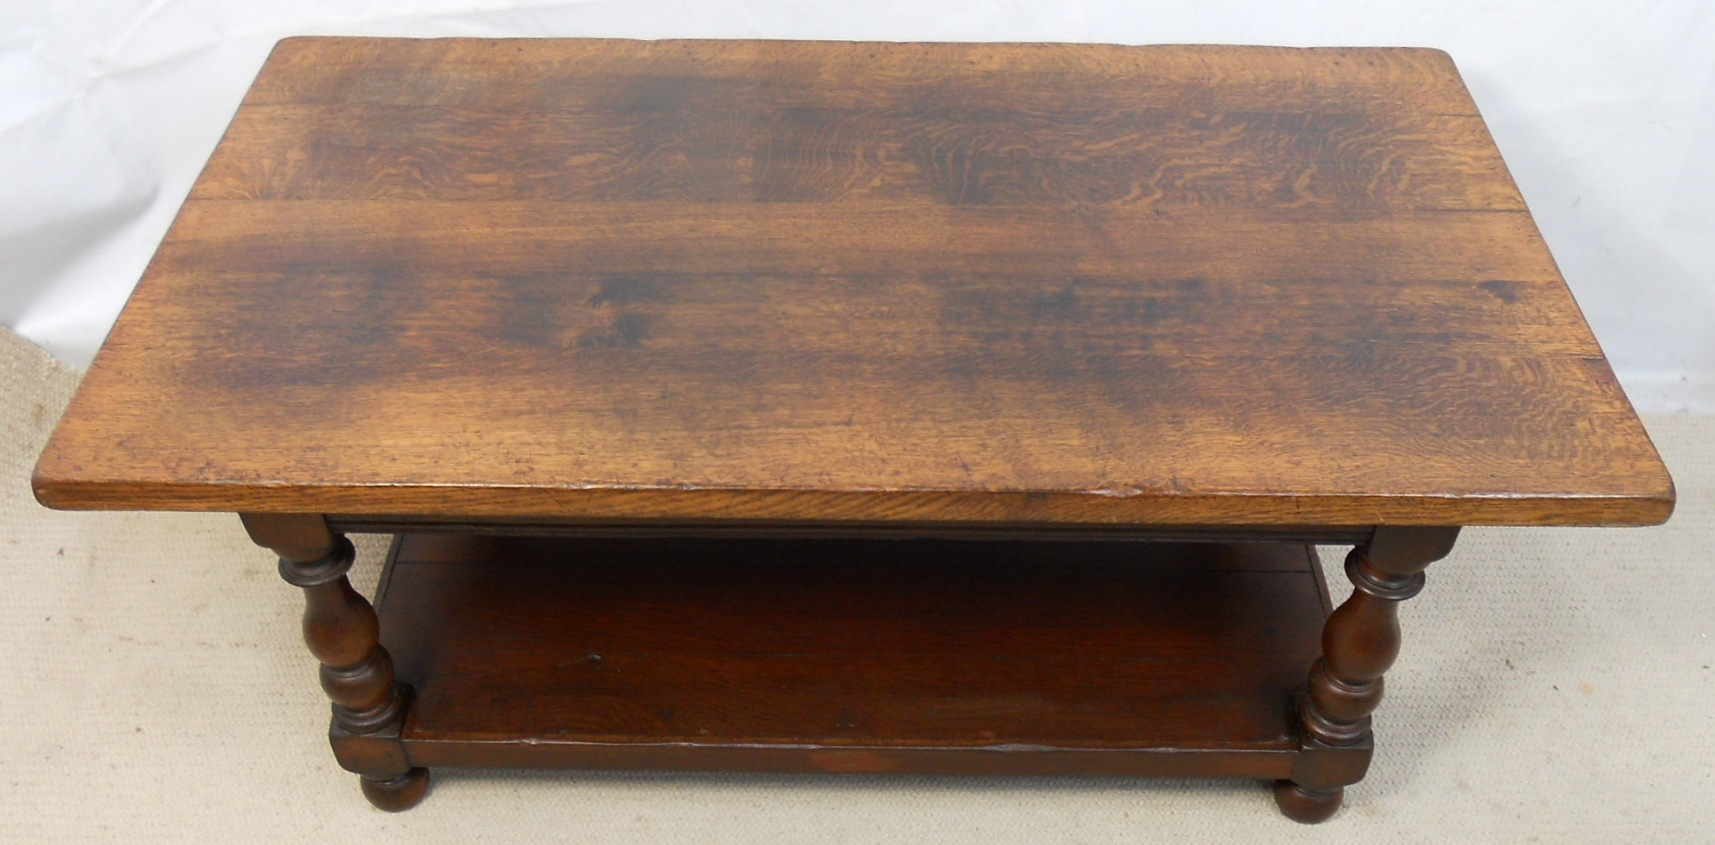 Large Heavy Oak Coffee Table